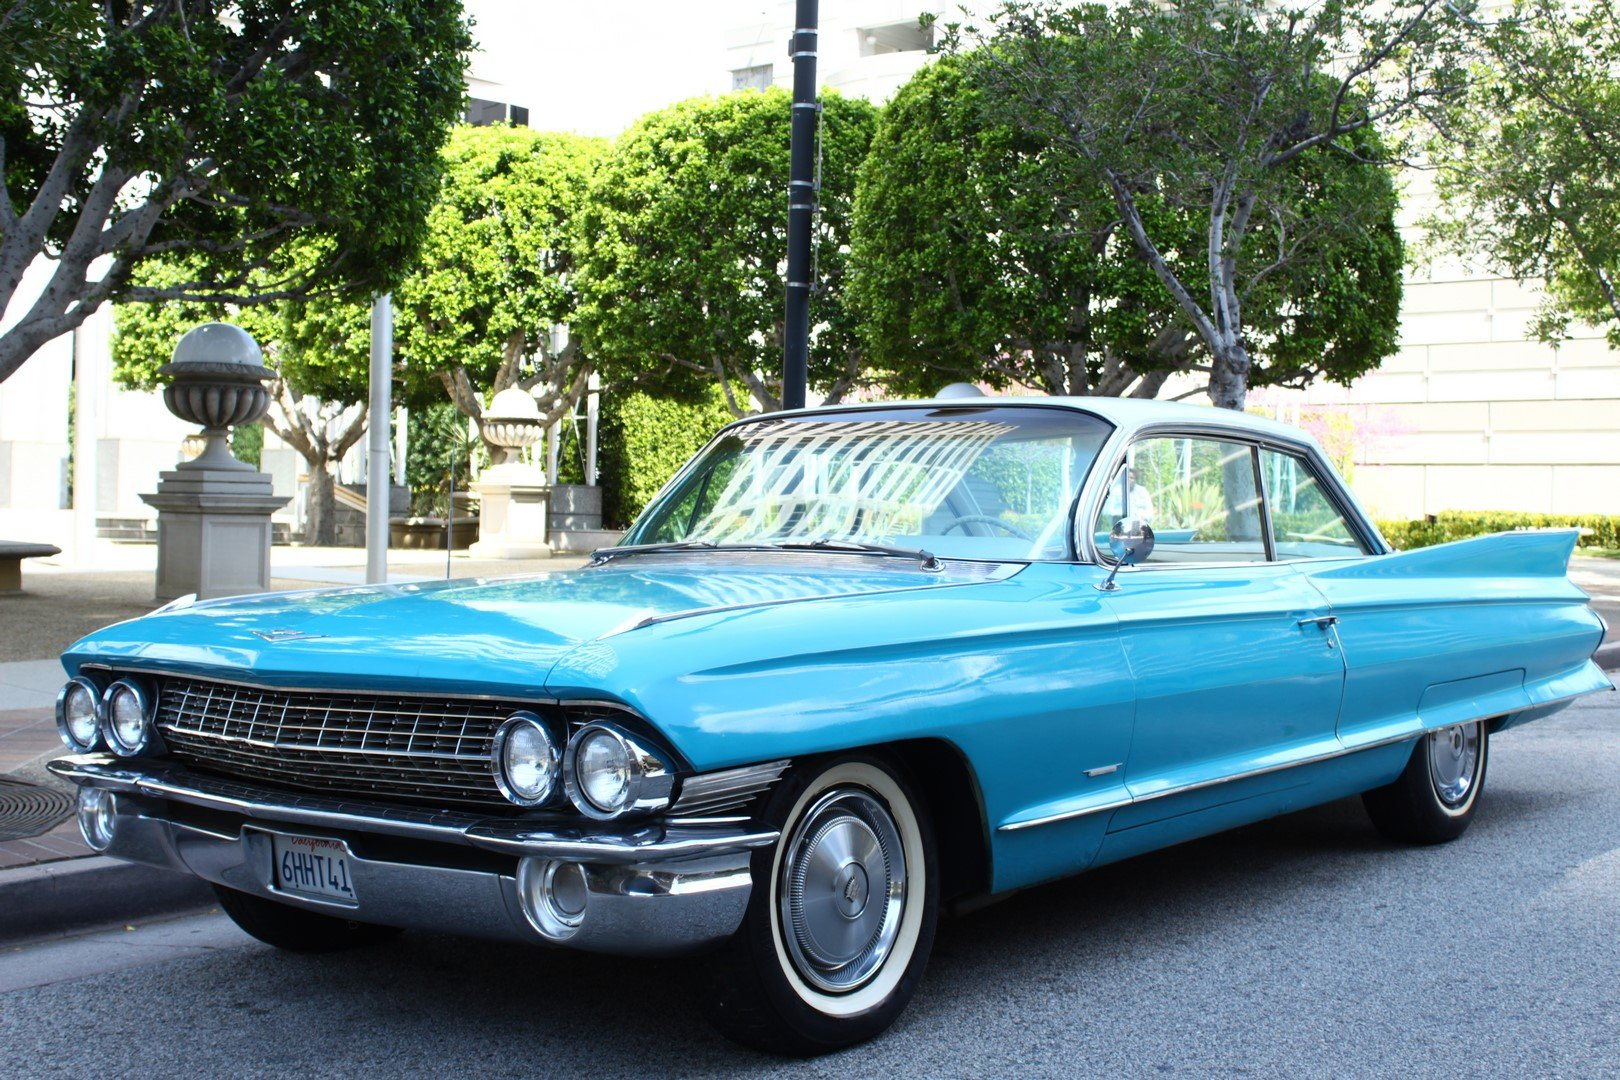 1961 CADILLAC SERIES 62 For Sale (picture 1 of 6)